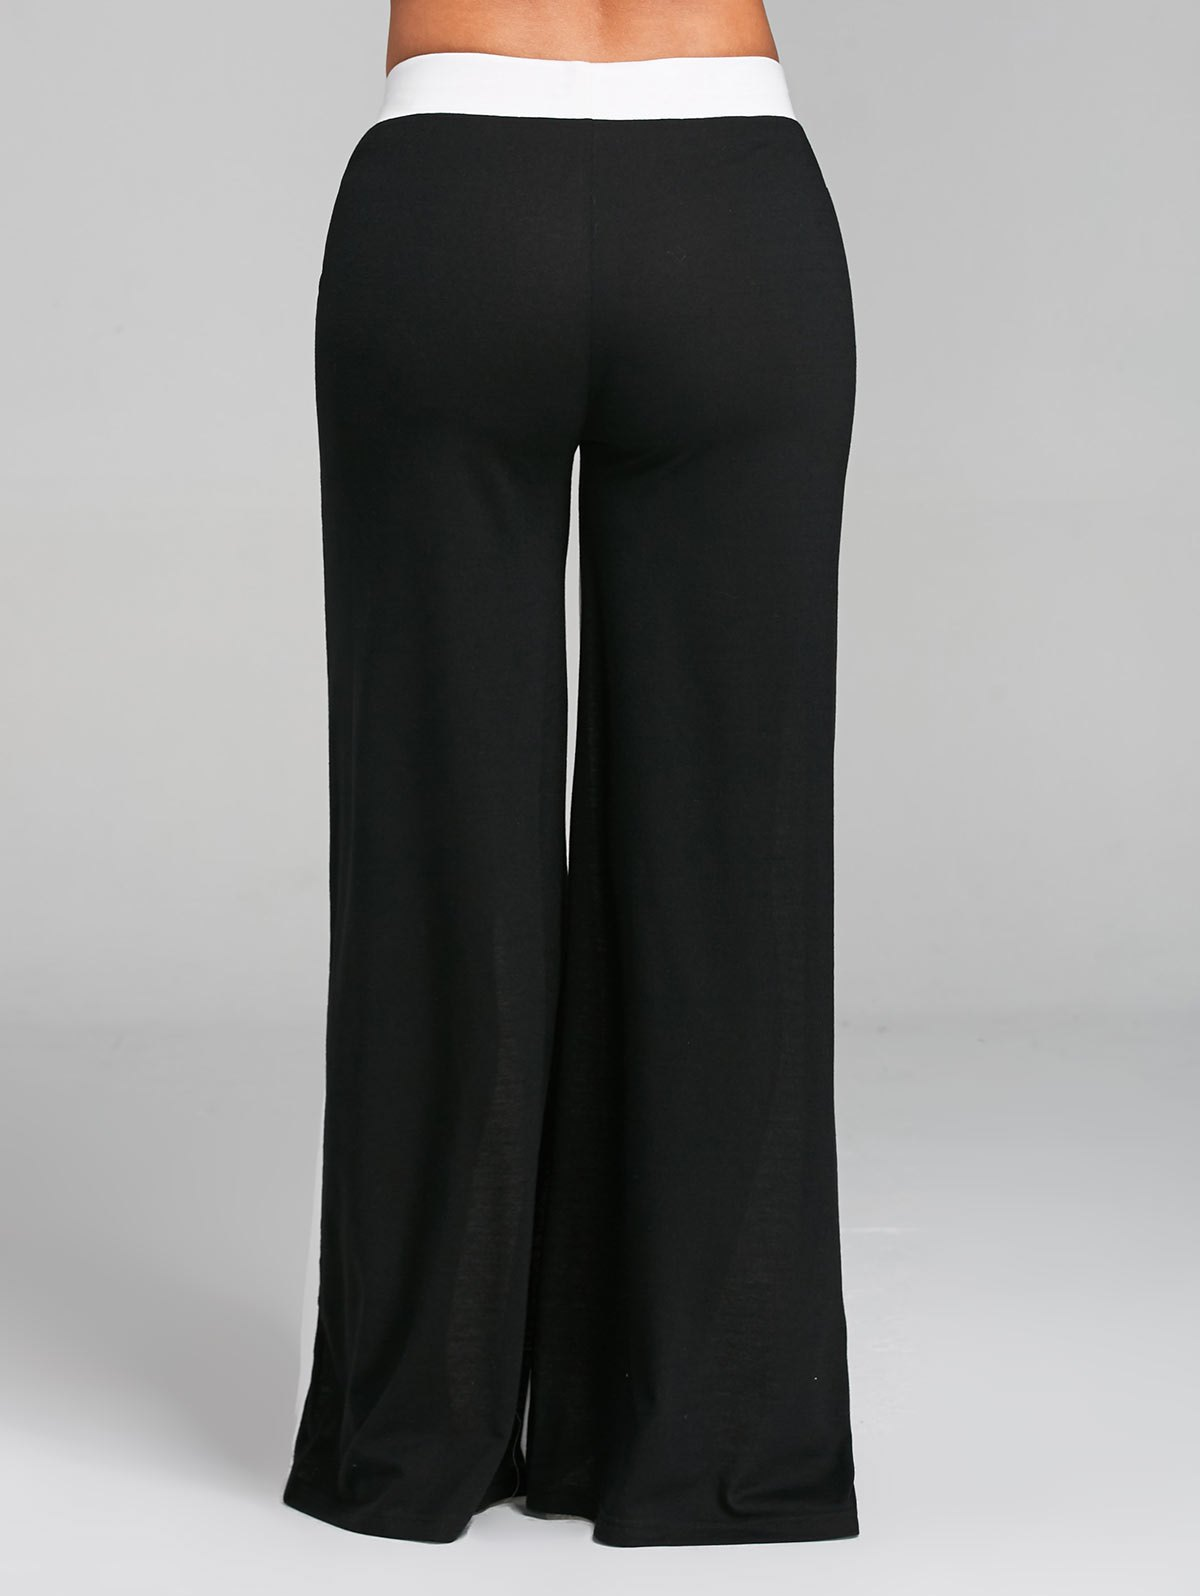 Color Block Wide Legged Pants - WHITE/BLACK 2XL